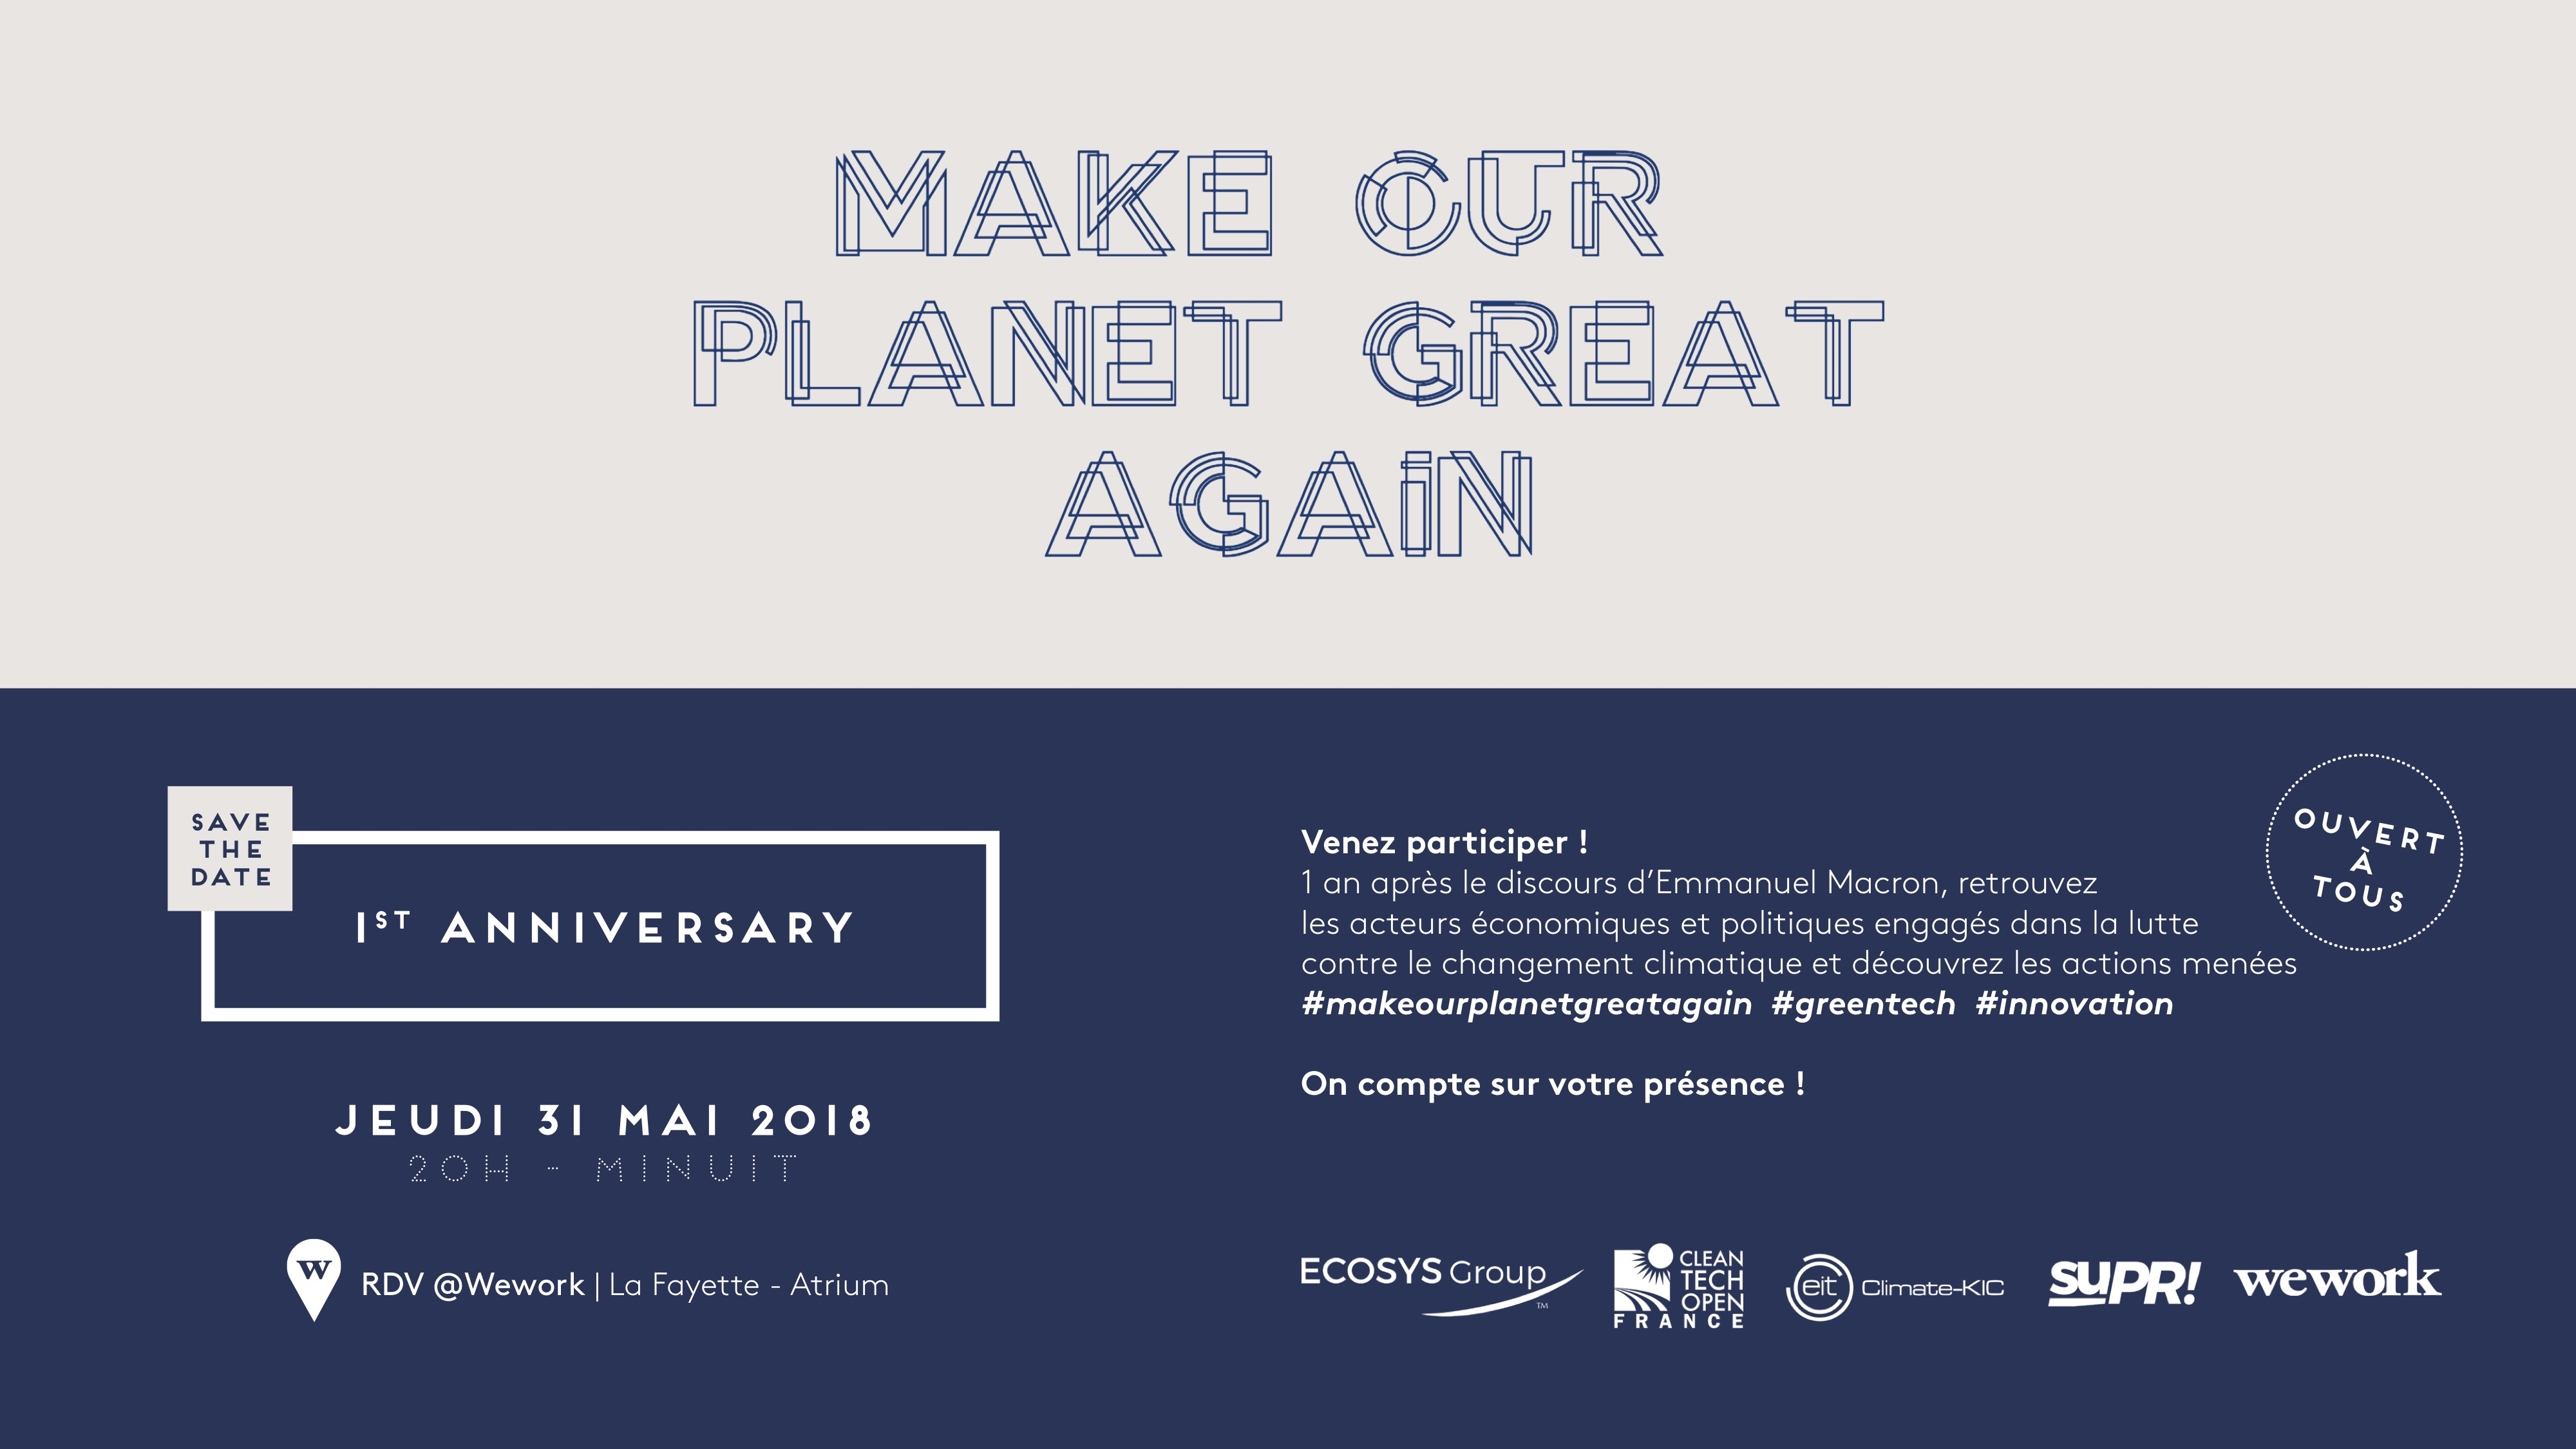 Make Our Planet Great Again – First anniversary